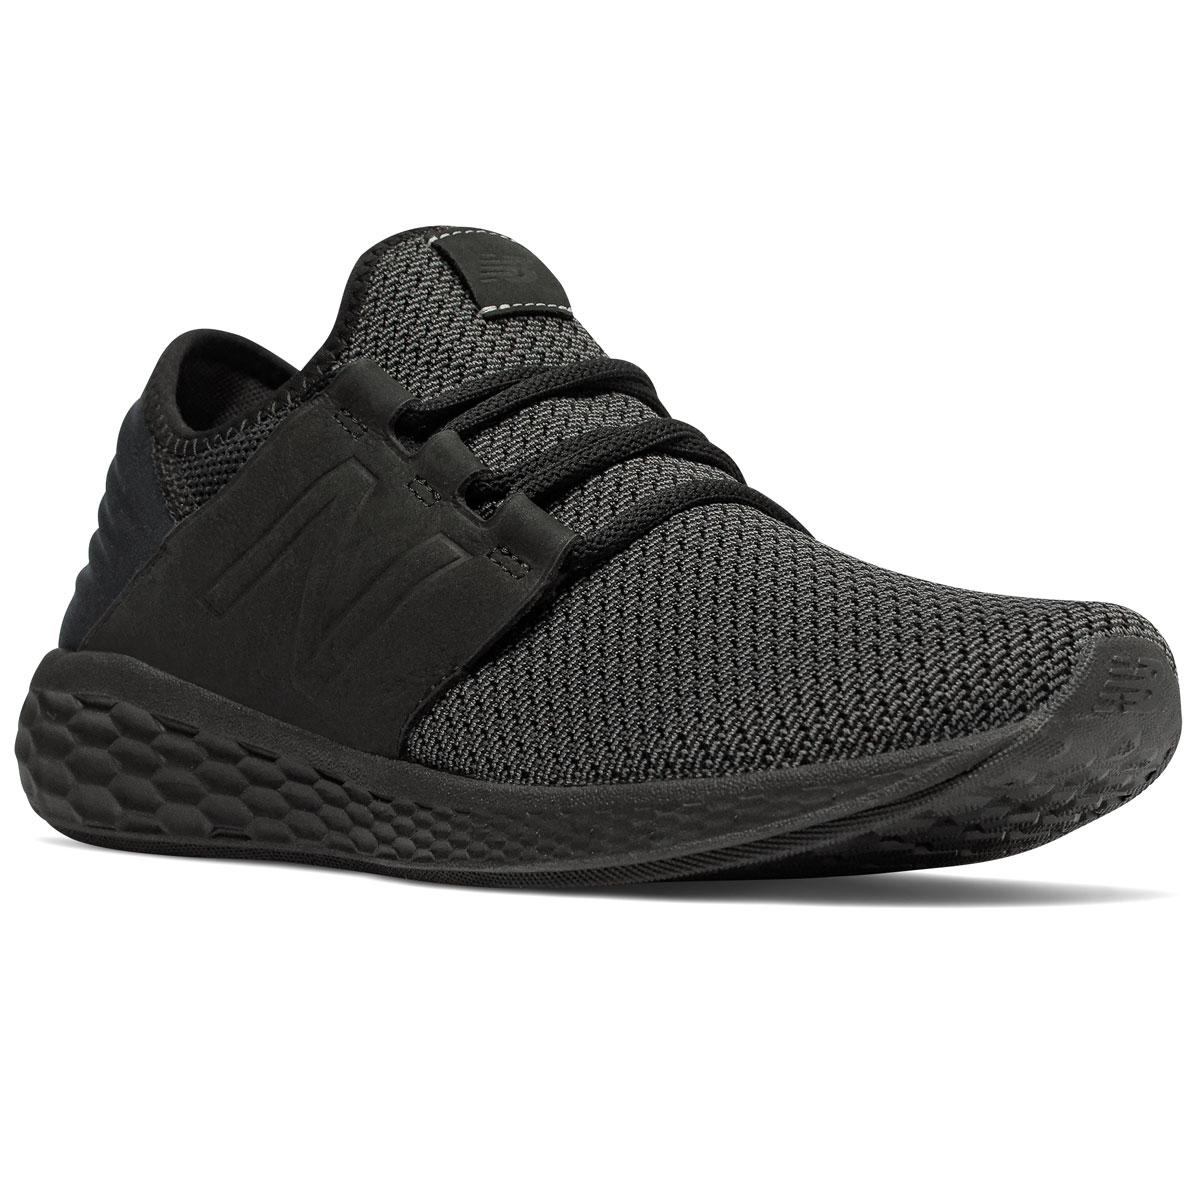 New Balance Men's Fresh Foam Cruz V2 Nubuck Running Shoes - Black, 12